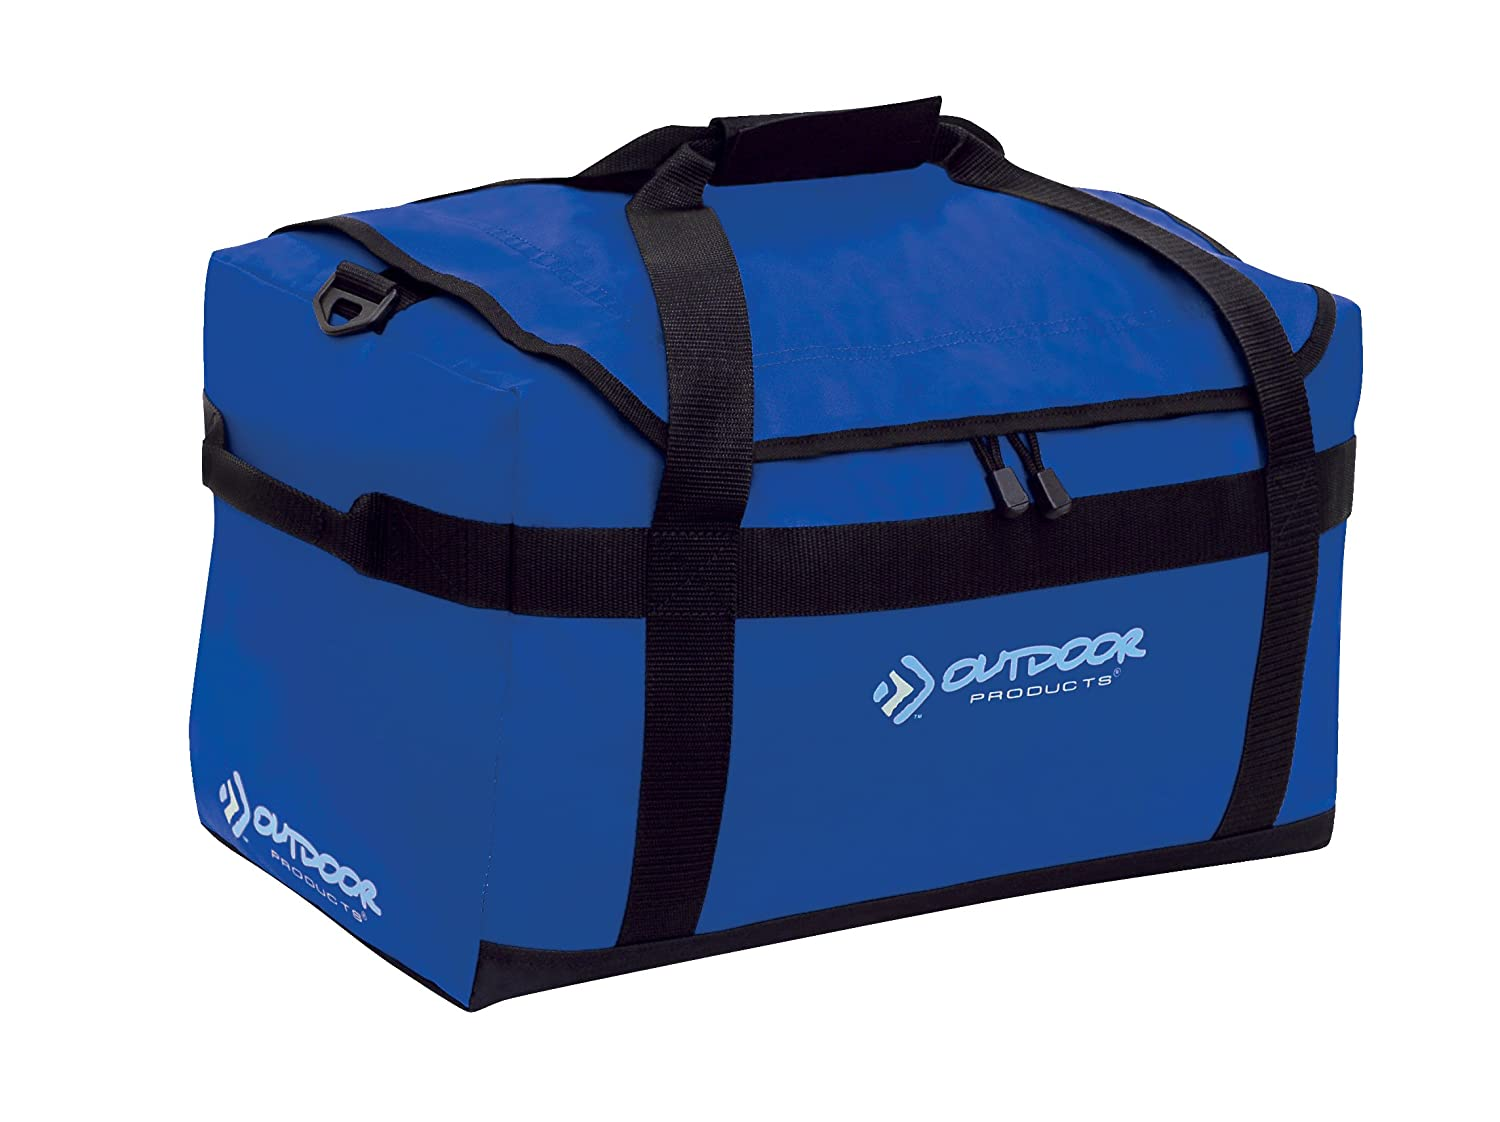 Outdoor Products Storm Duffles two pack